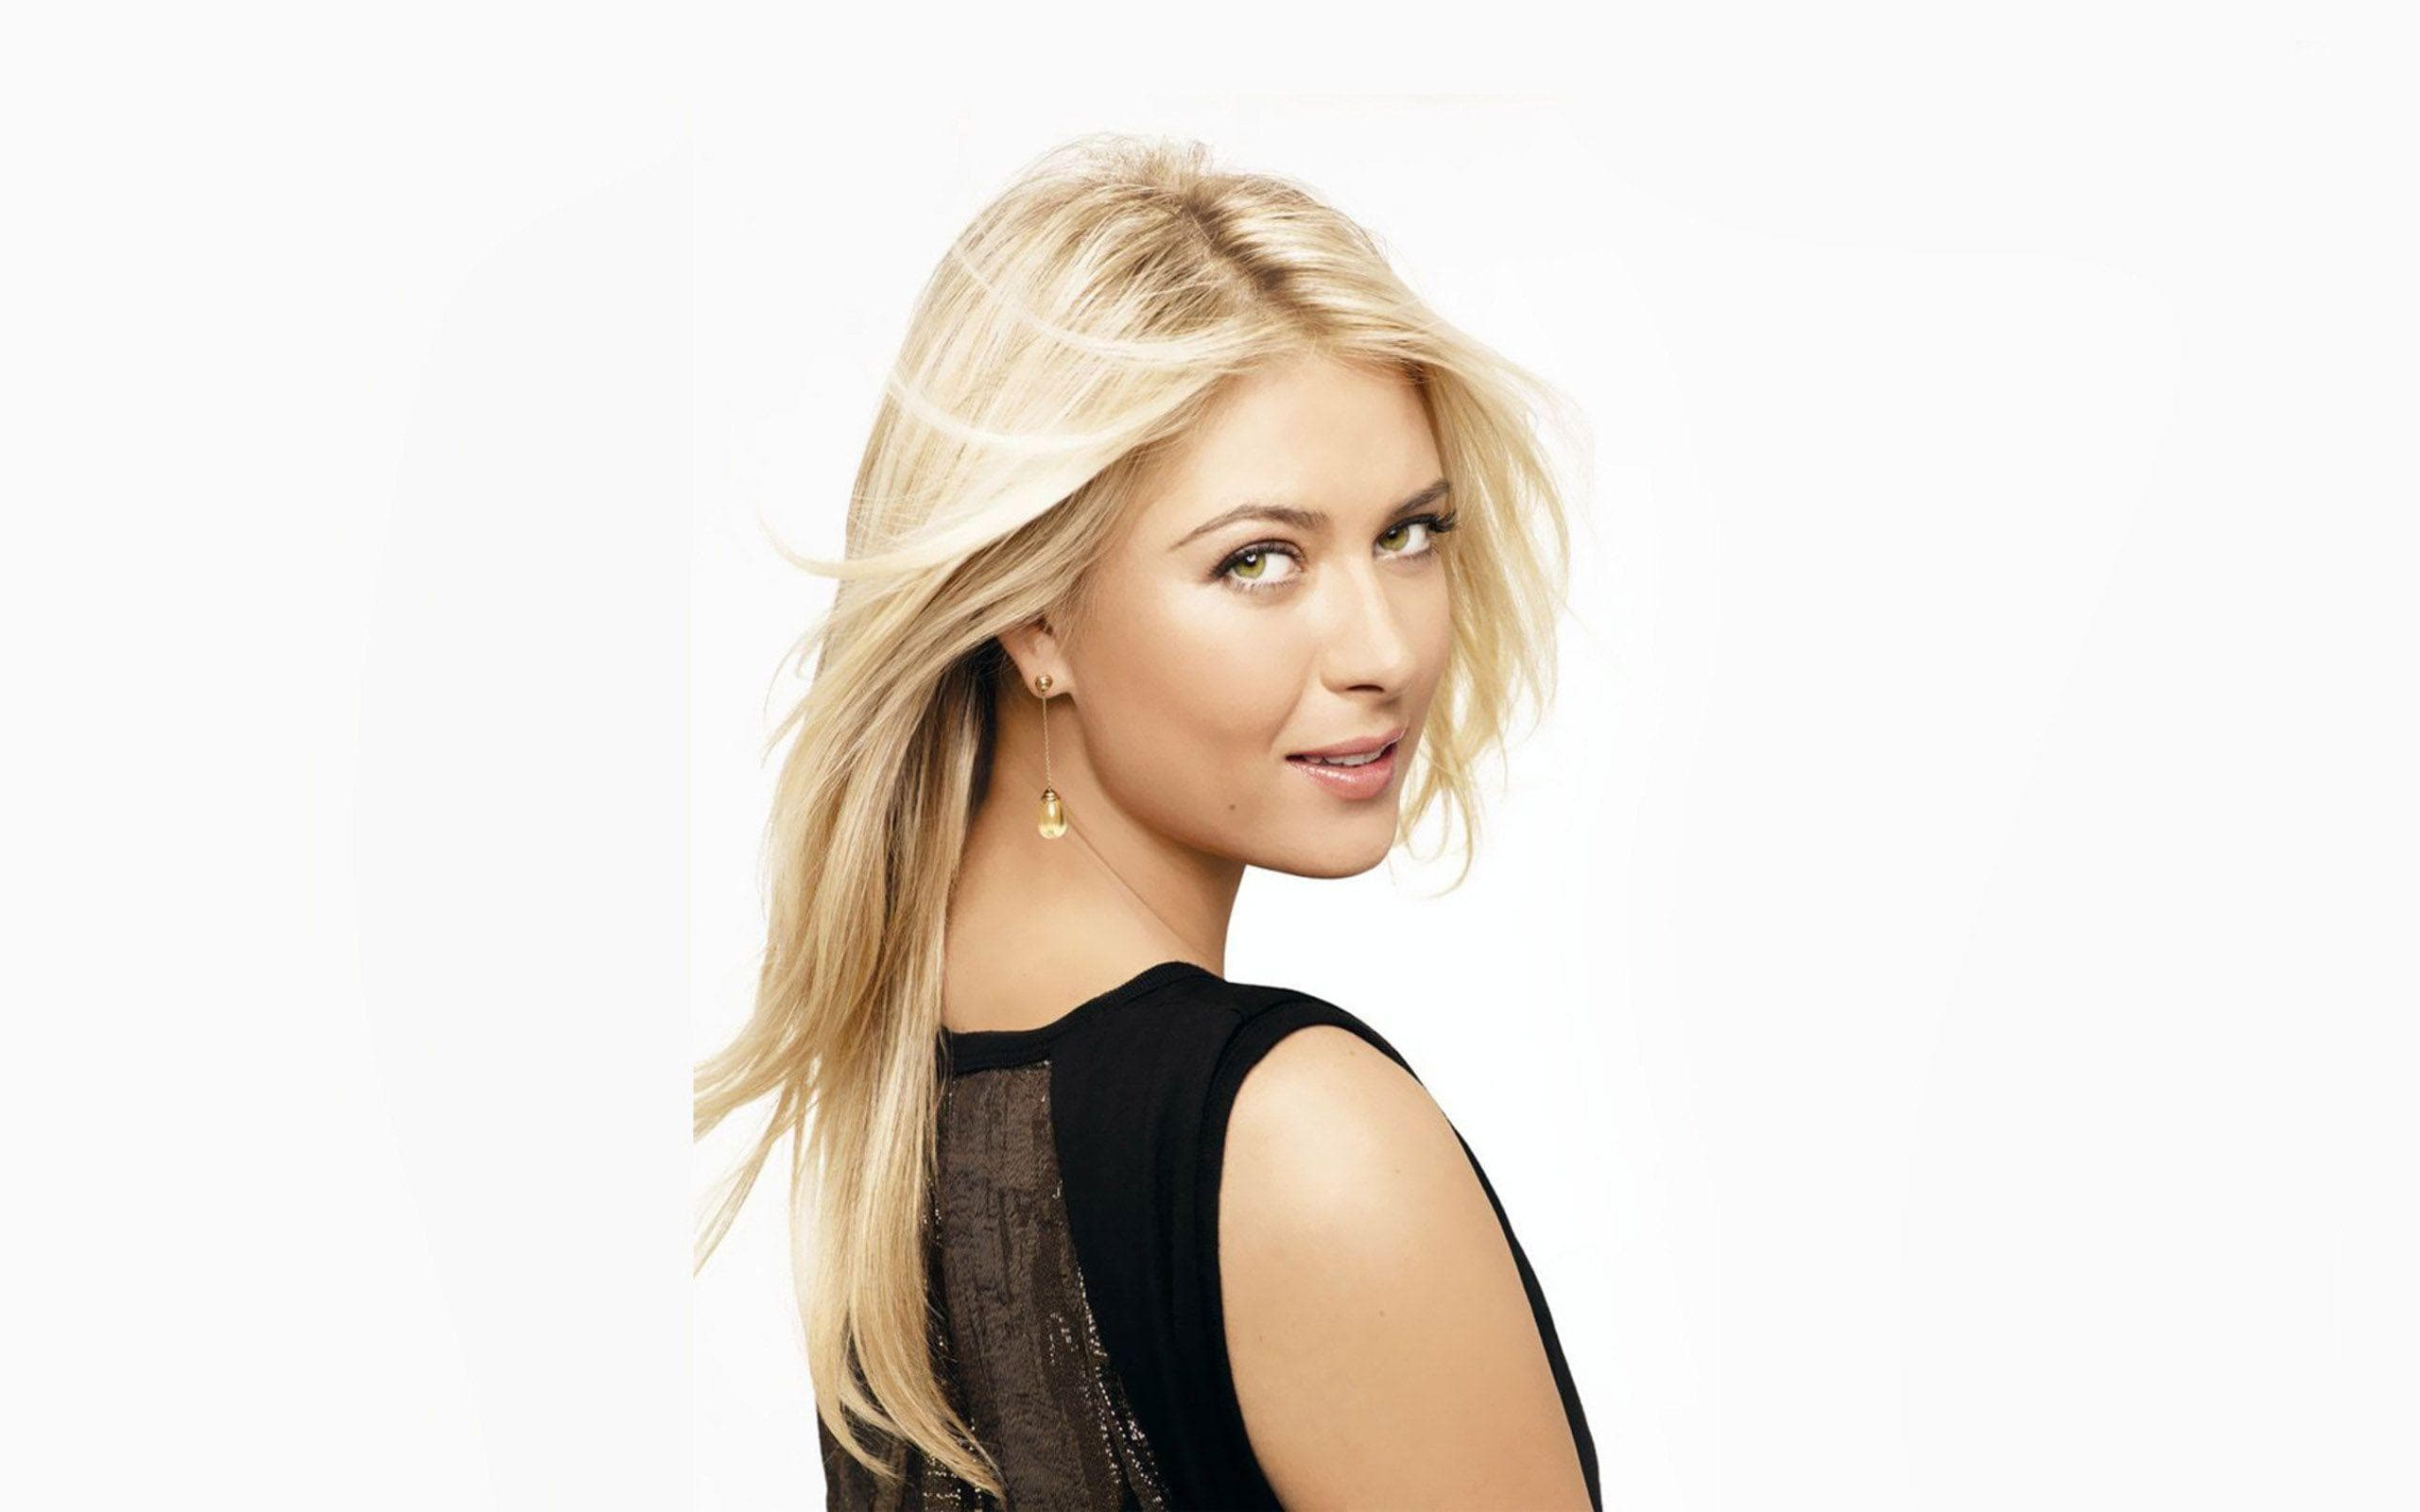 Maria Sharapova Wide wallpapers